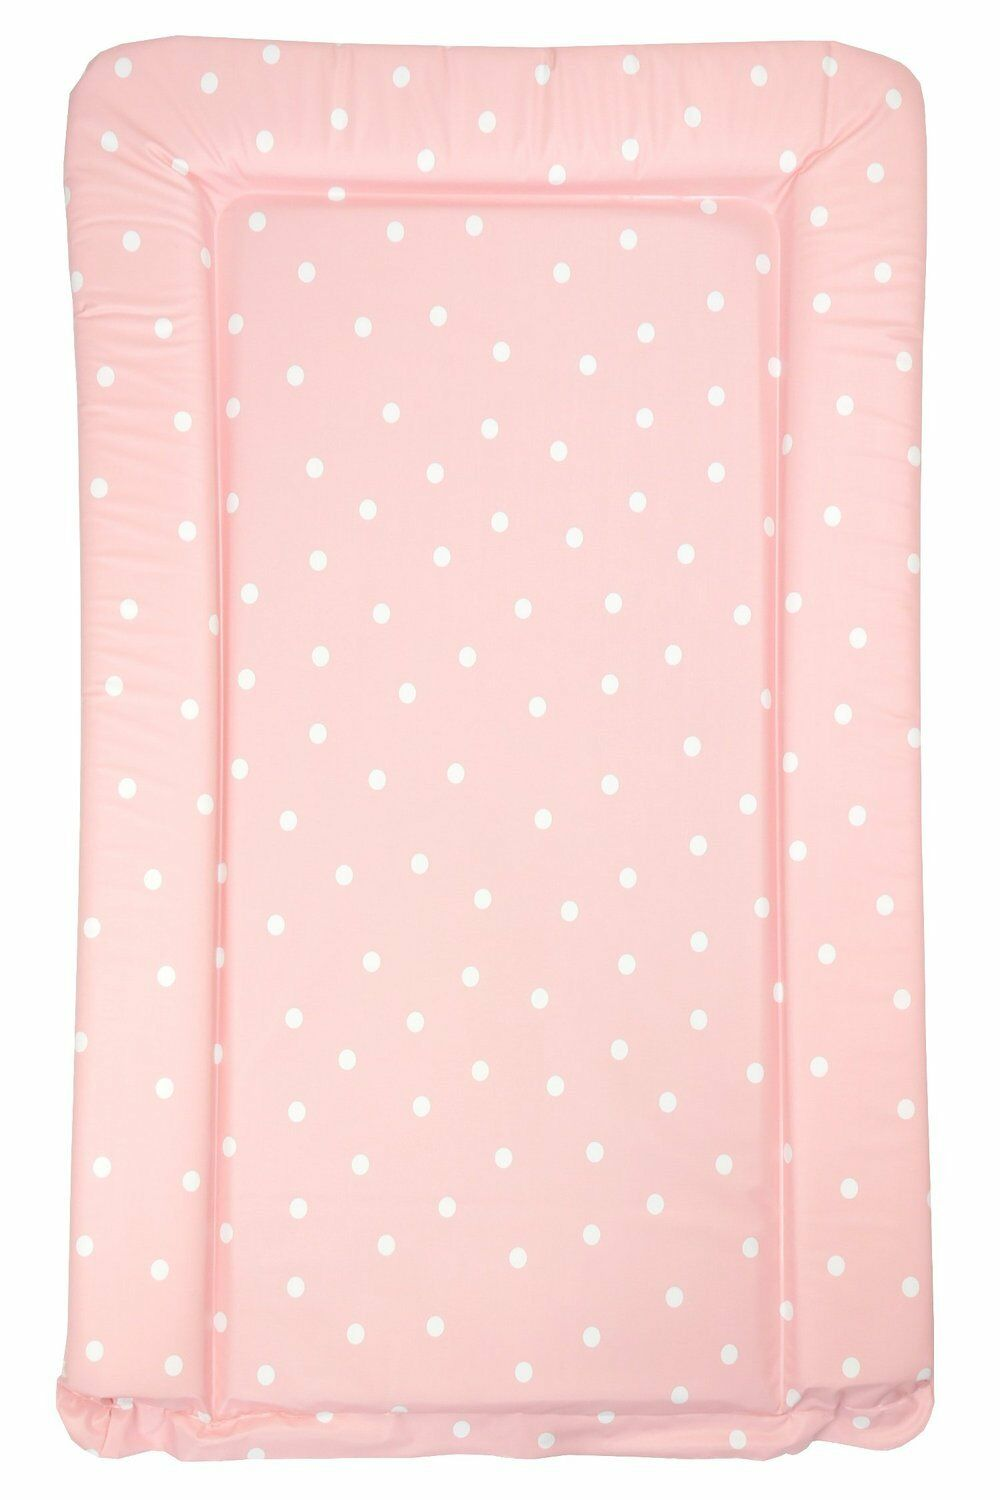 Brand New Boys Girls Soft Padded Deluxe Large Baby - Baby Change Mats